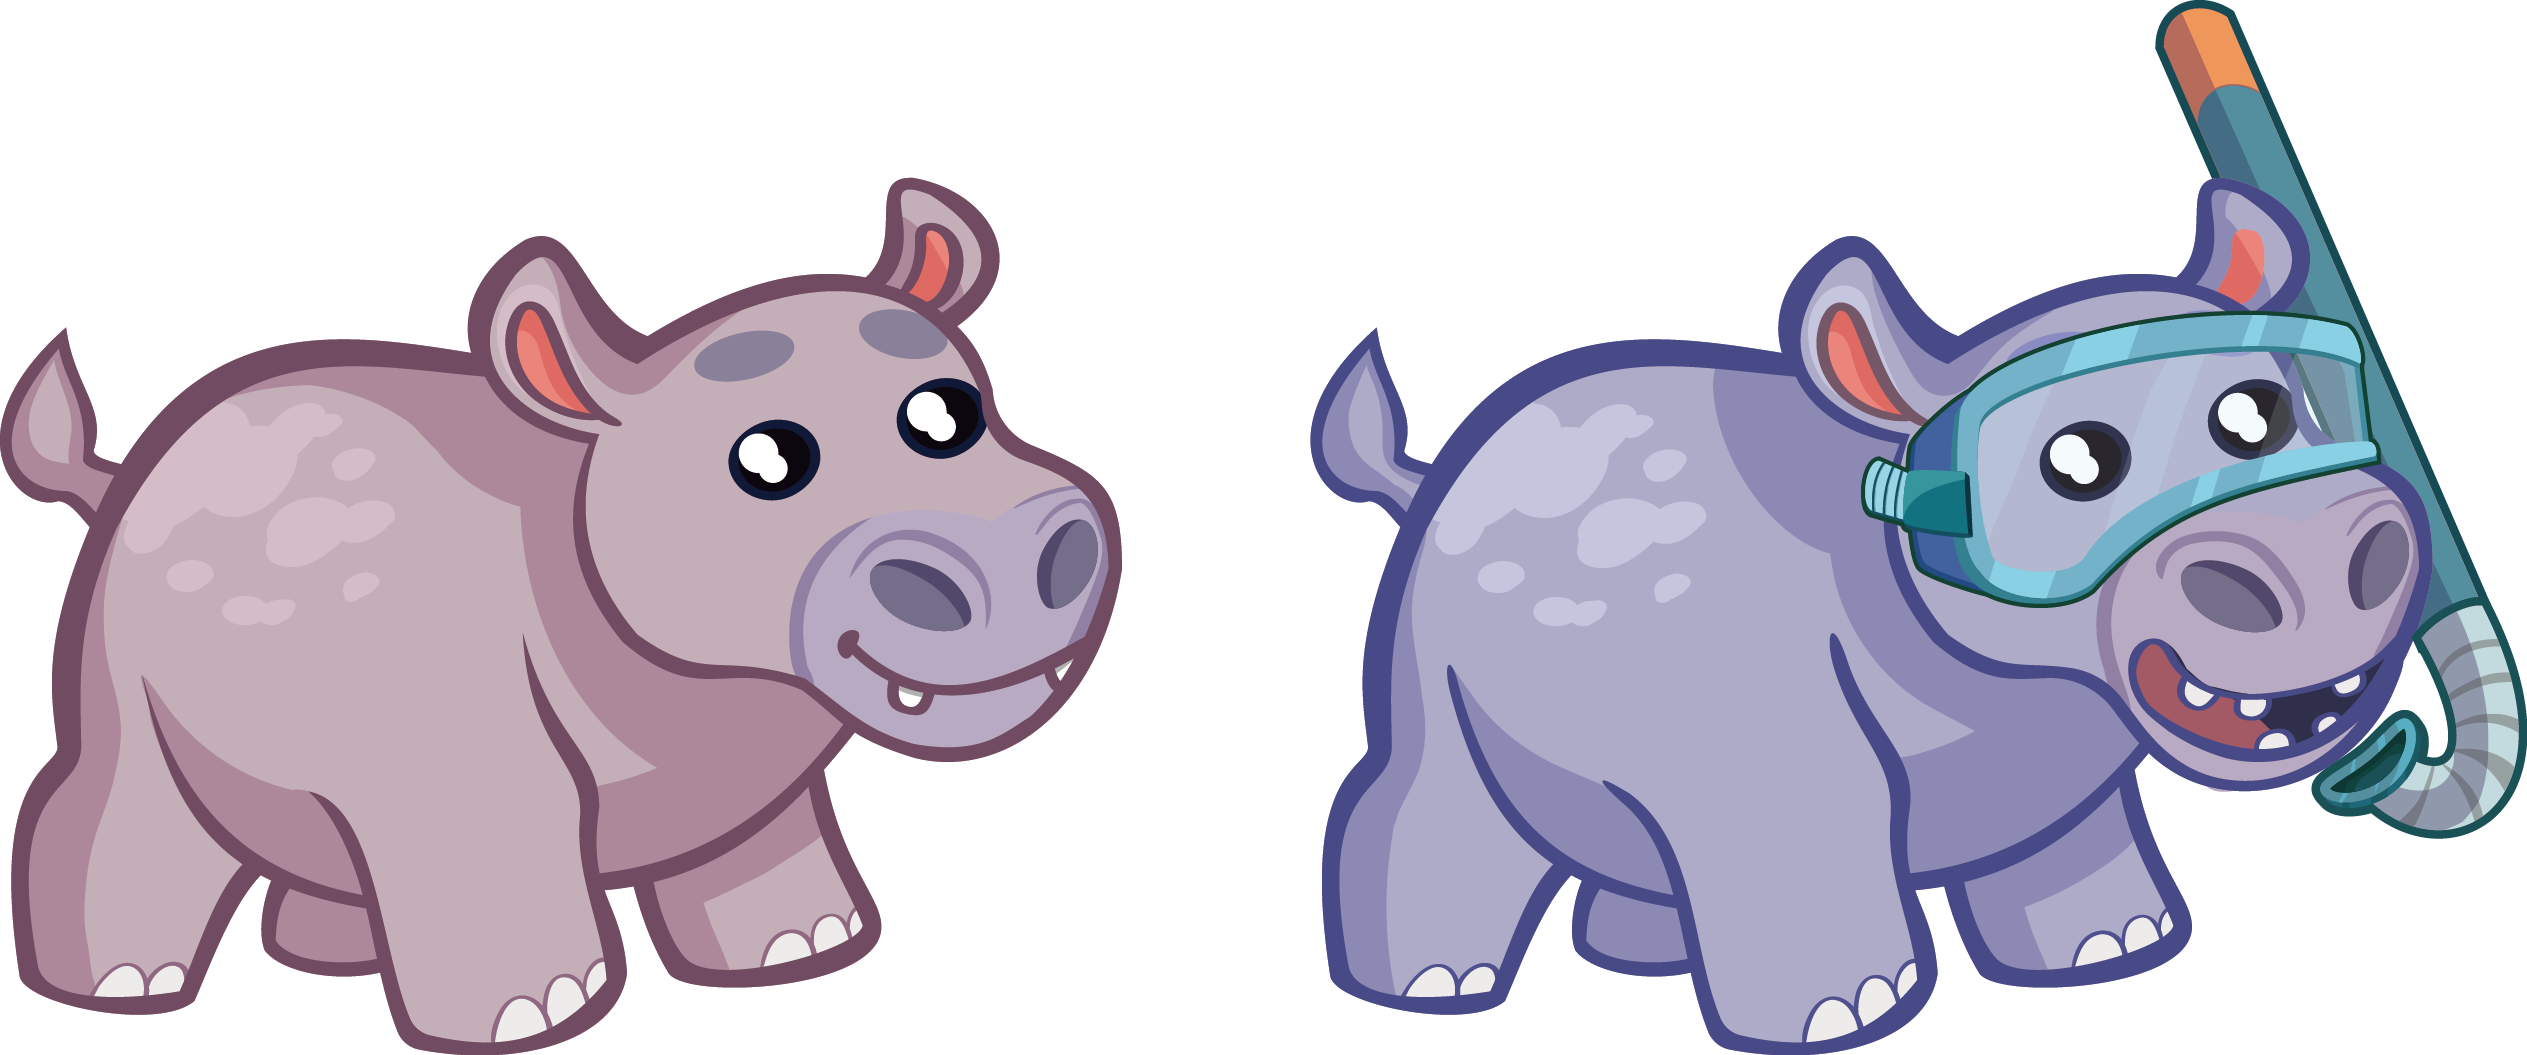 Hippo clipart simple. Cartoon drawing at getdrawings